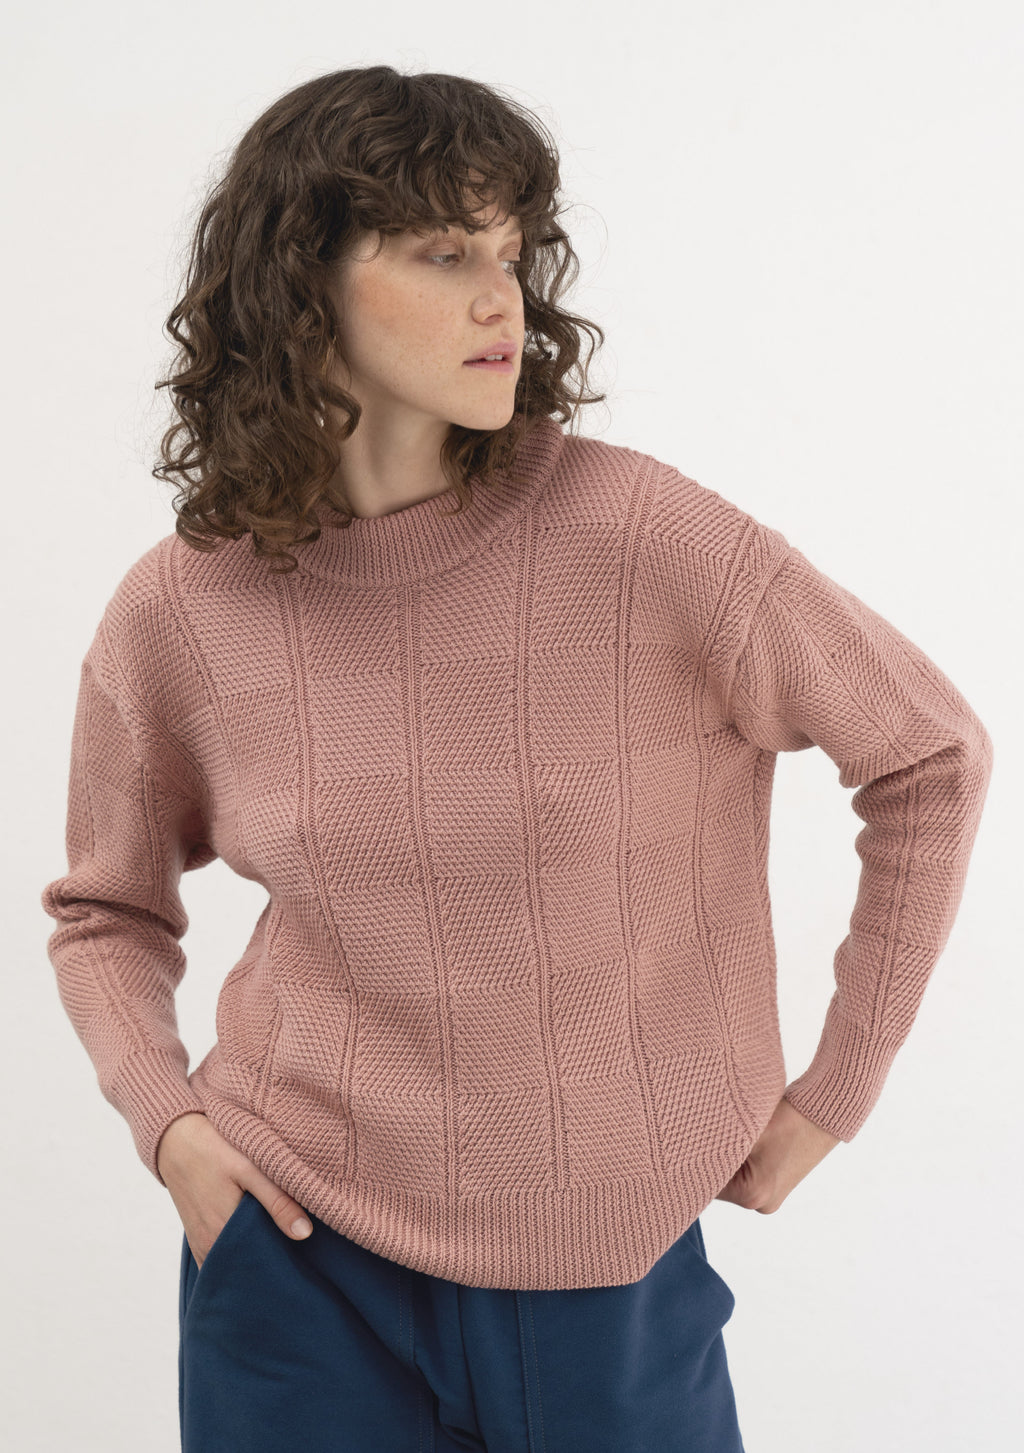 ROSE MERINO WOOL JERSEY